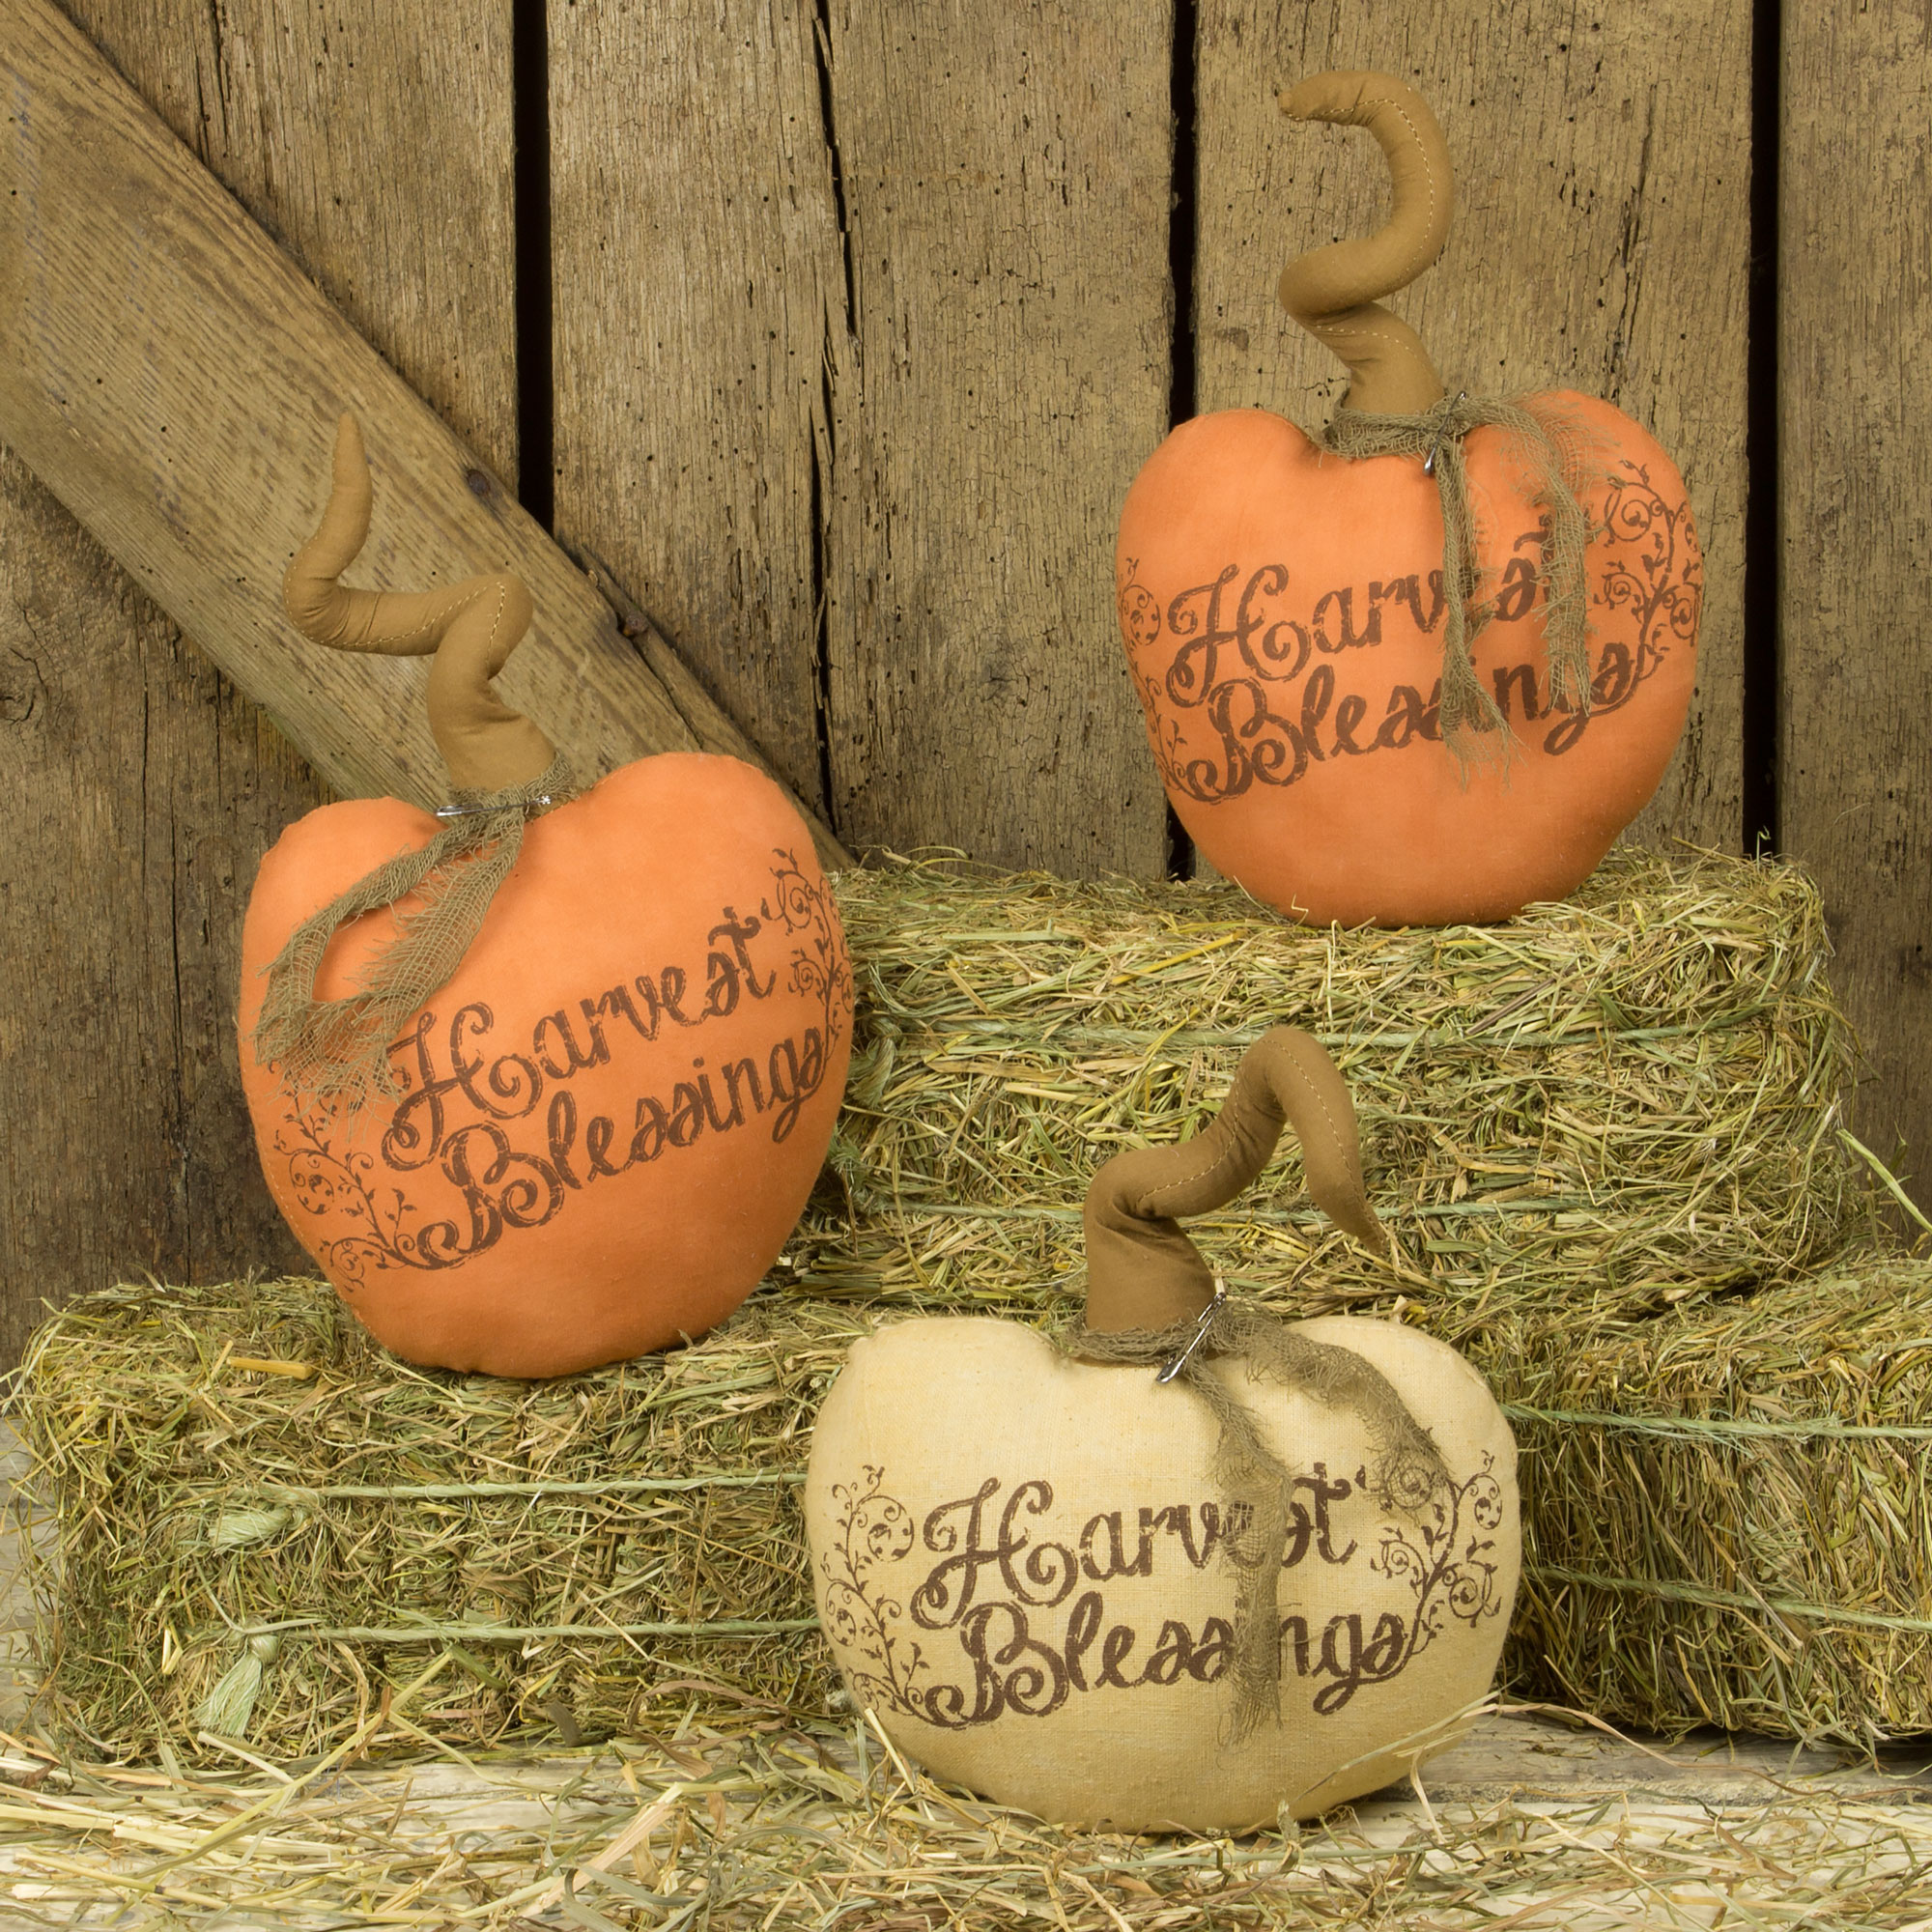 HAM-F15348-Small-Vintage-Harvest-Blessings-Pumpkin-Set-LRG